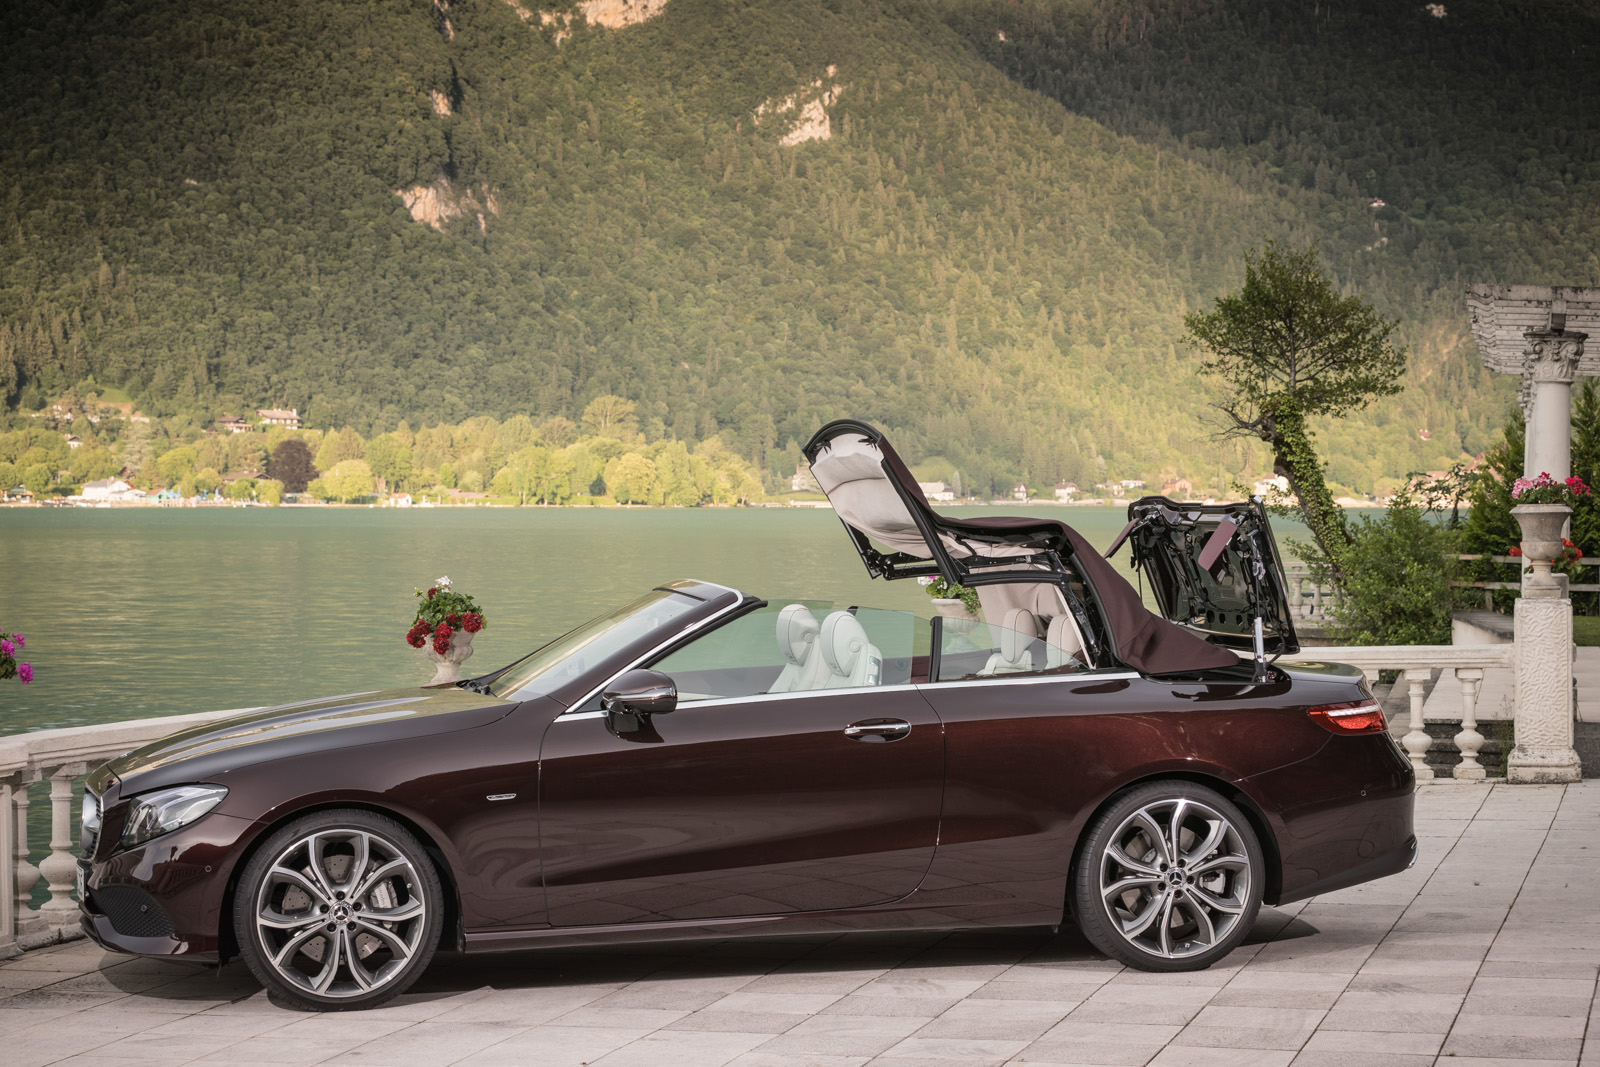 2018 mercedes benz e class cabriolet review gtspirit. Black Bedroom Furniture Sets. Home Design Ideas